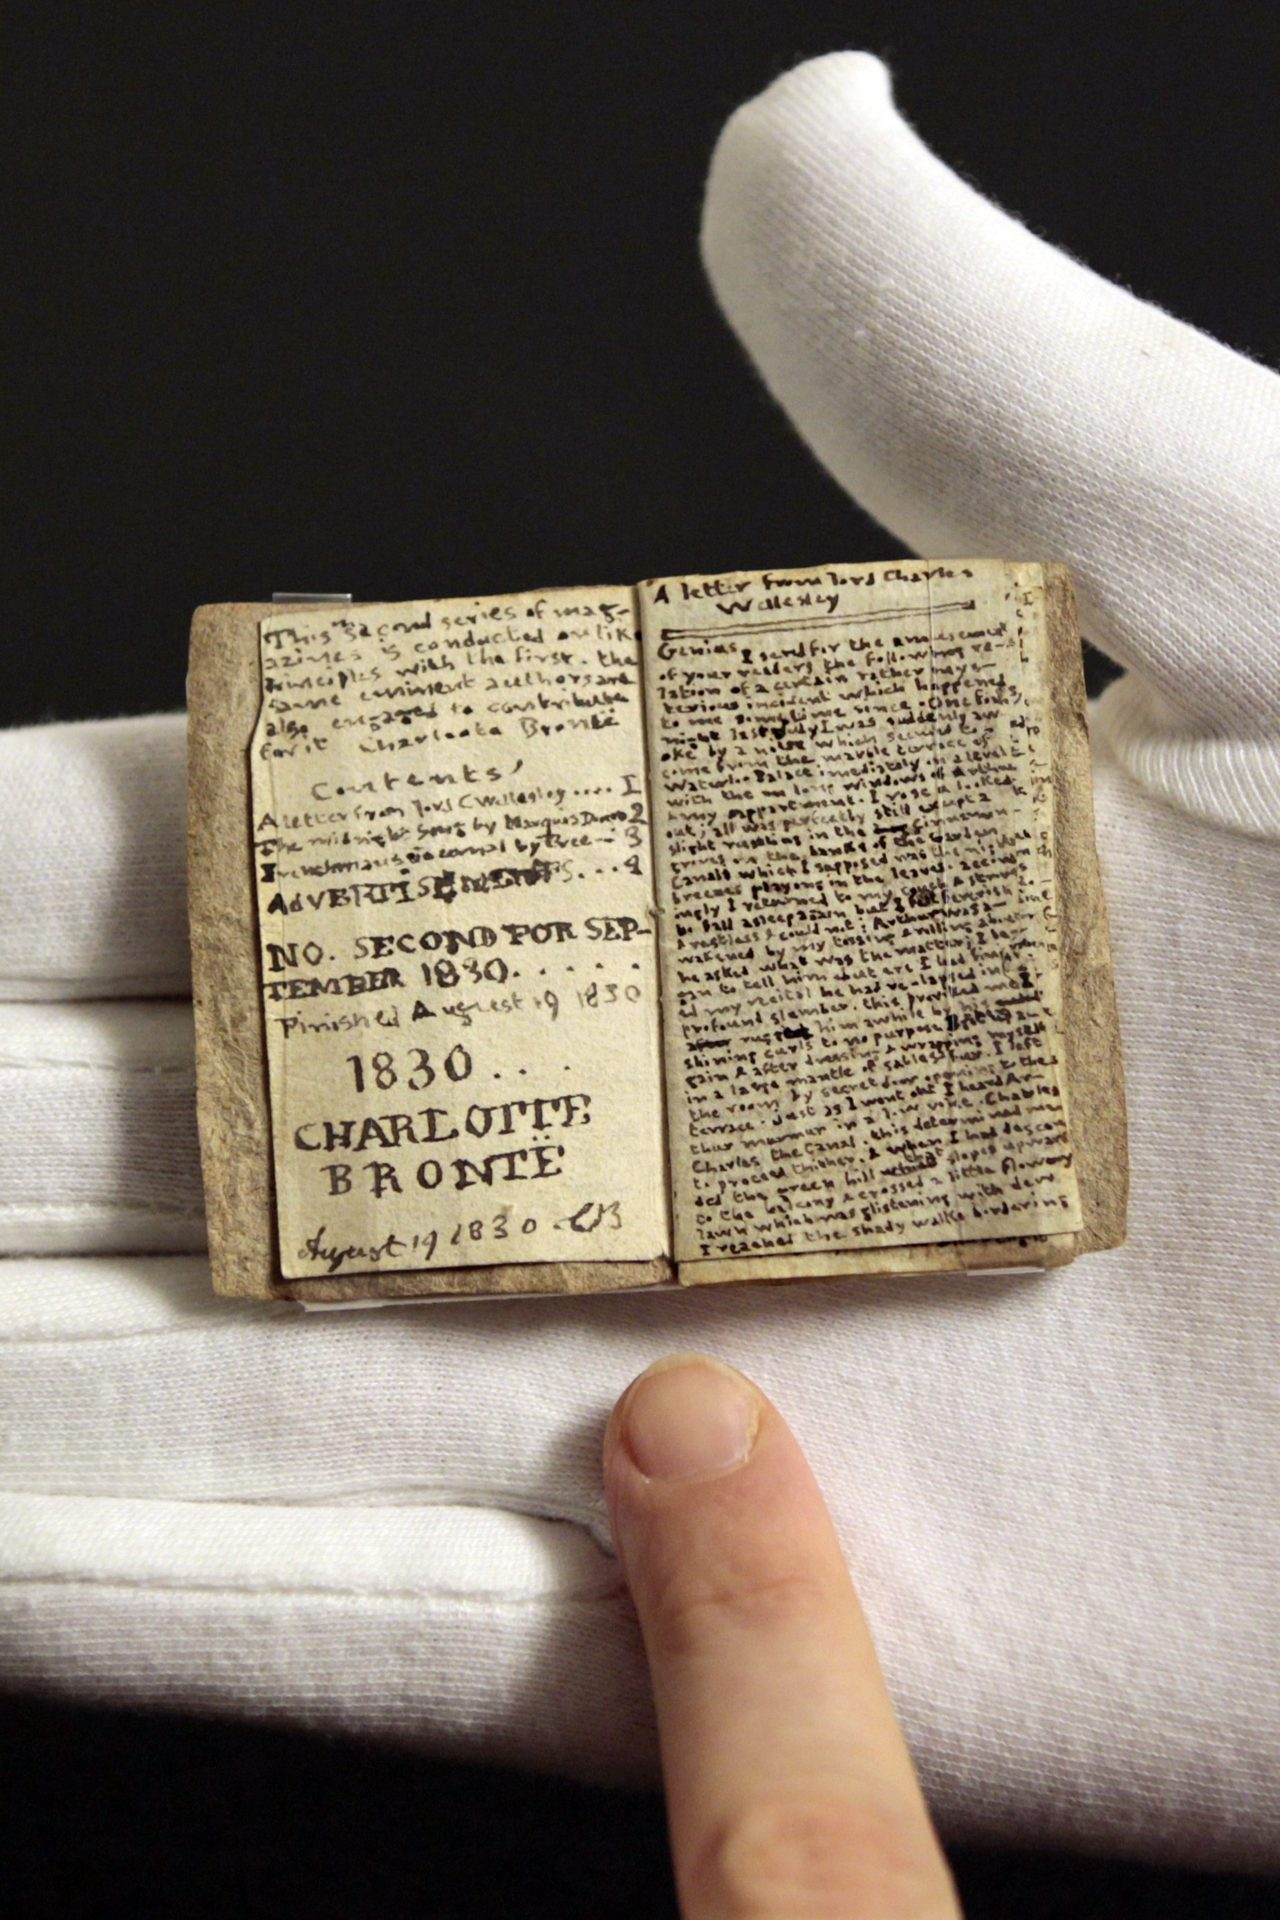 nparts: Museum unveils Bronte's teeny tiny early work A manuscript by British author Charlotte Brontë that fits comfortably into the palm of a hand that fetched 691,000 pounds ($1.1 million) at a Sotheby's auction in December, more than twice the upper estimate, went on display this week.